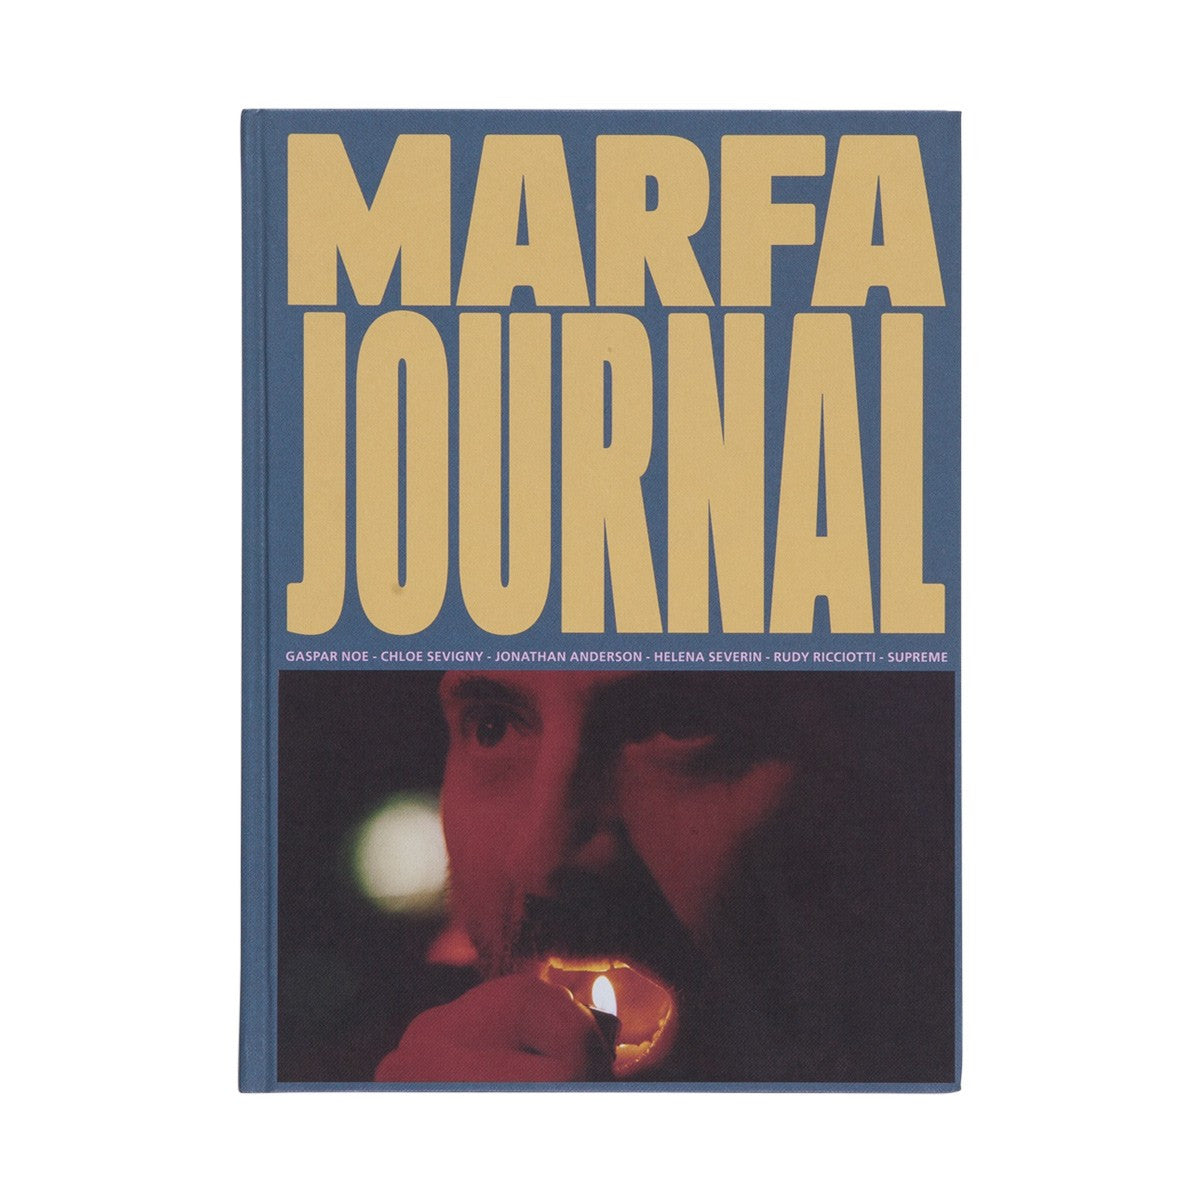 MARFA JOURNAL 03 (GASPAR NOE by Harley Weir cover)